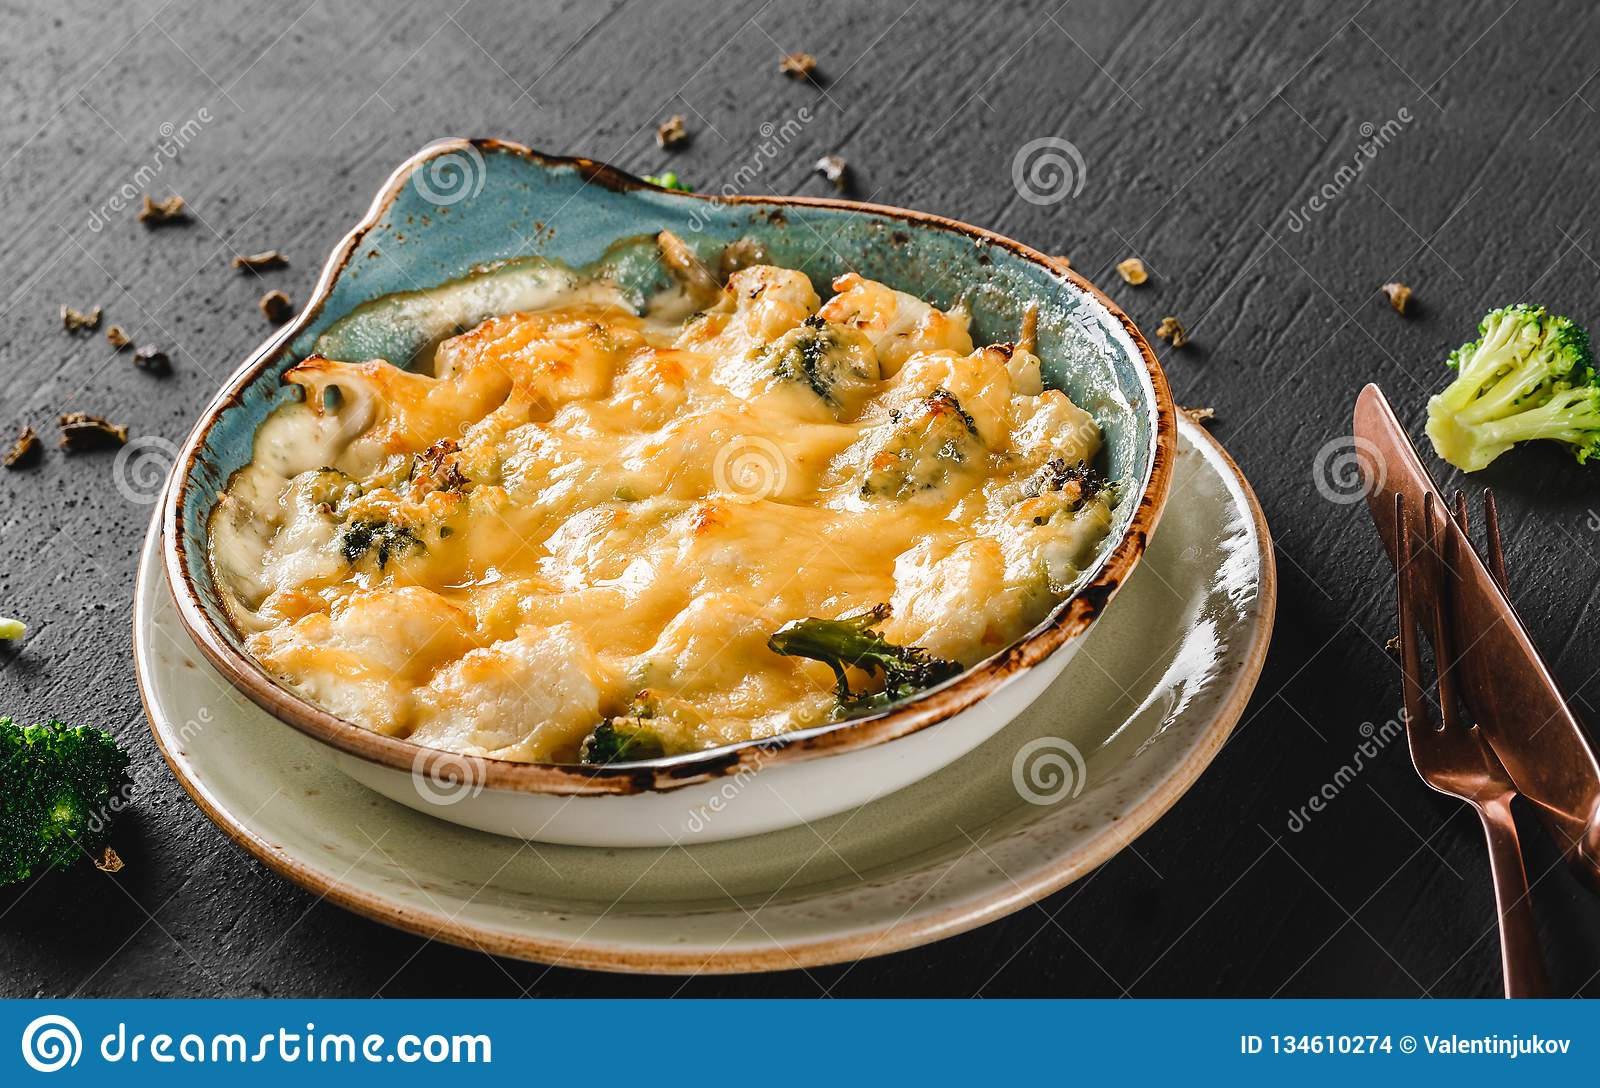 Vegetable Frittata With Potato Broccoli Cheese In Plate Over Dark Background Healthy Vegan Food Clean Eating Stock Photo Image Of Lunch Cheddar 134610274